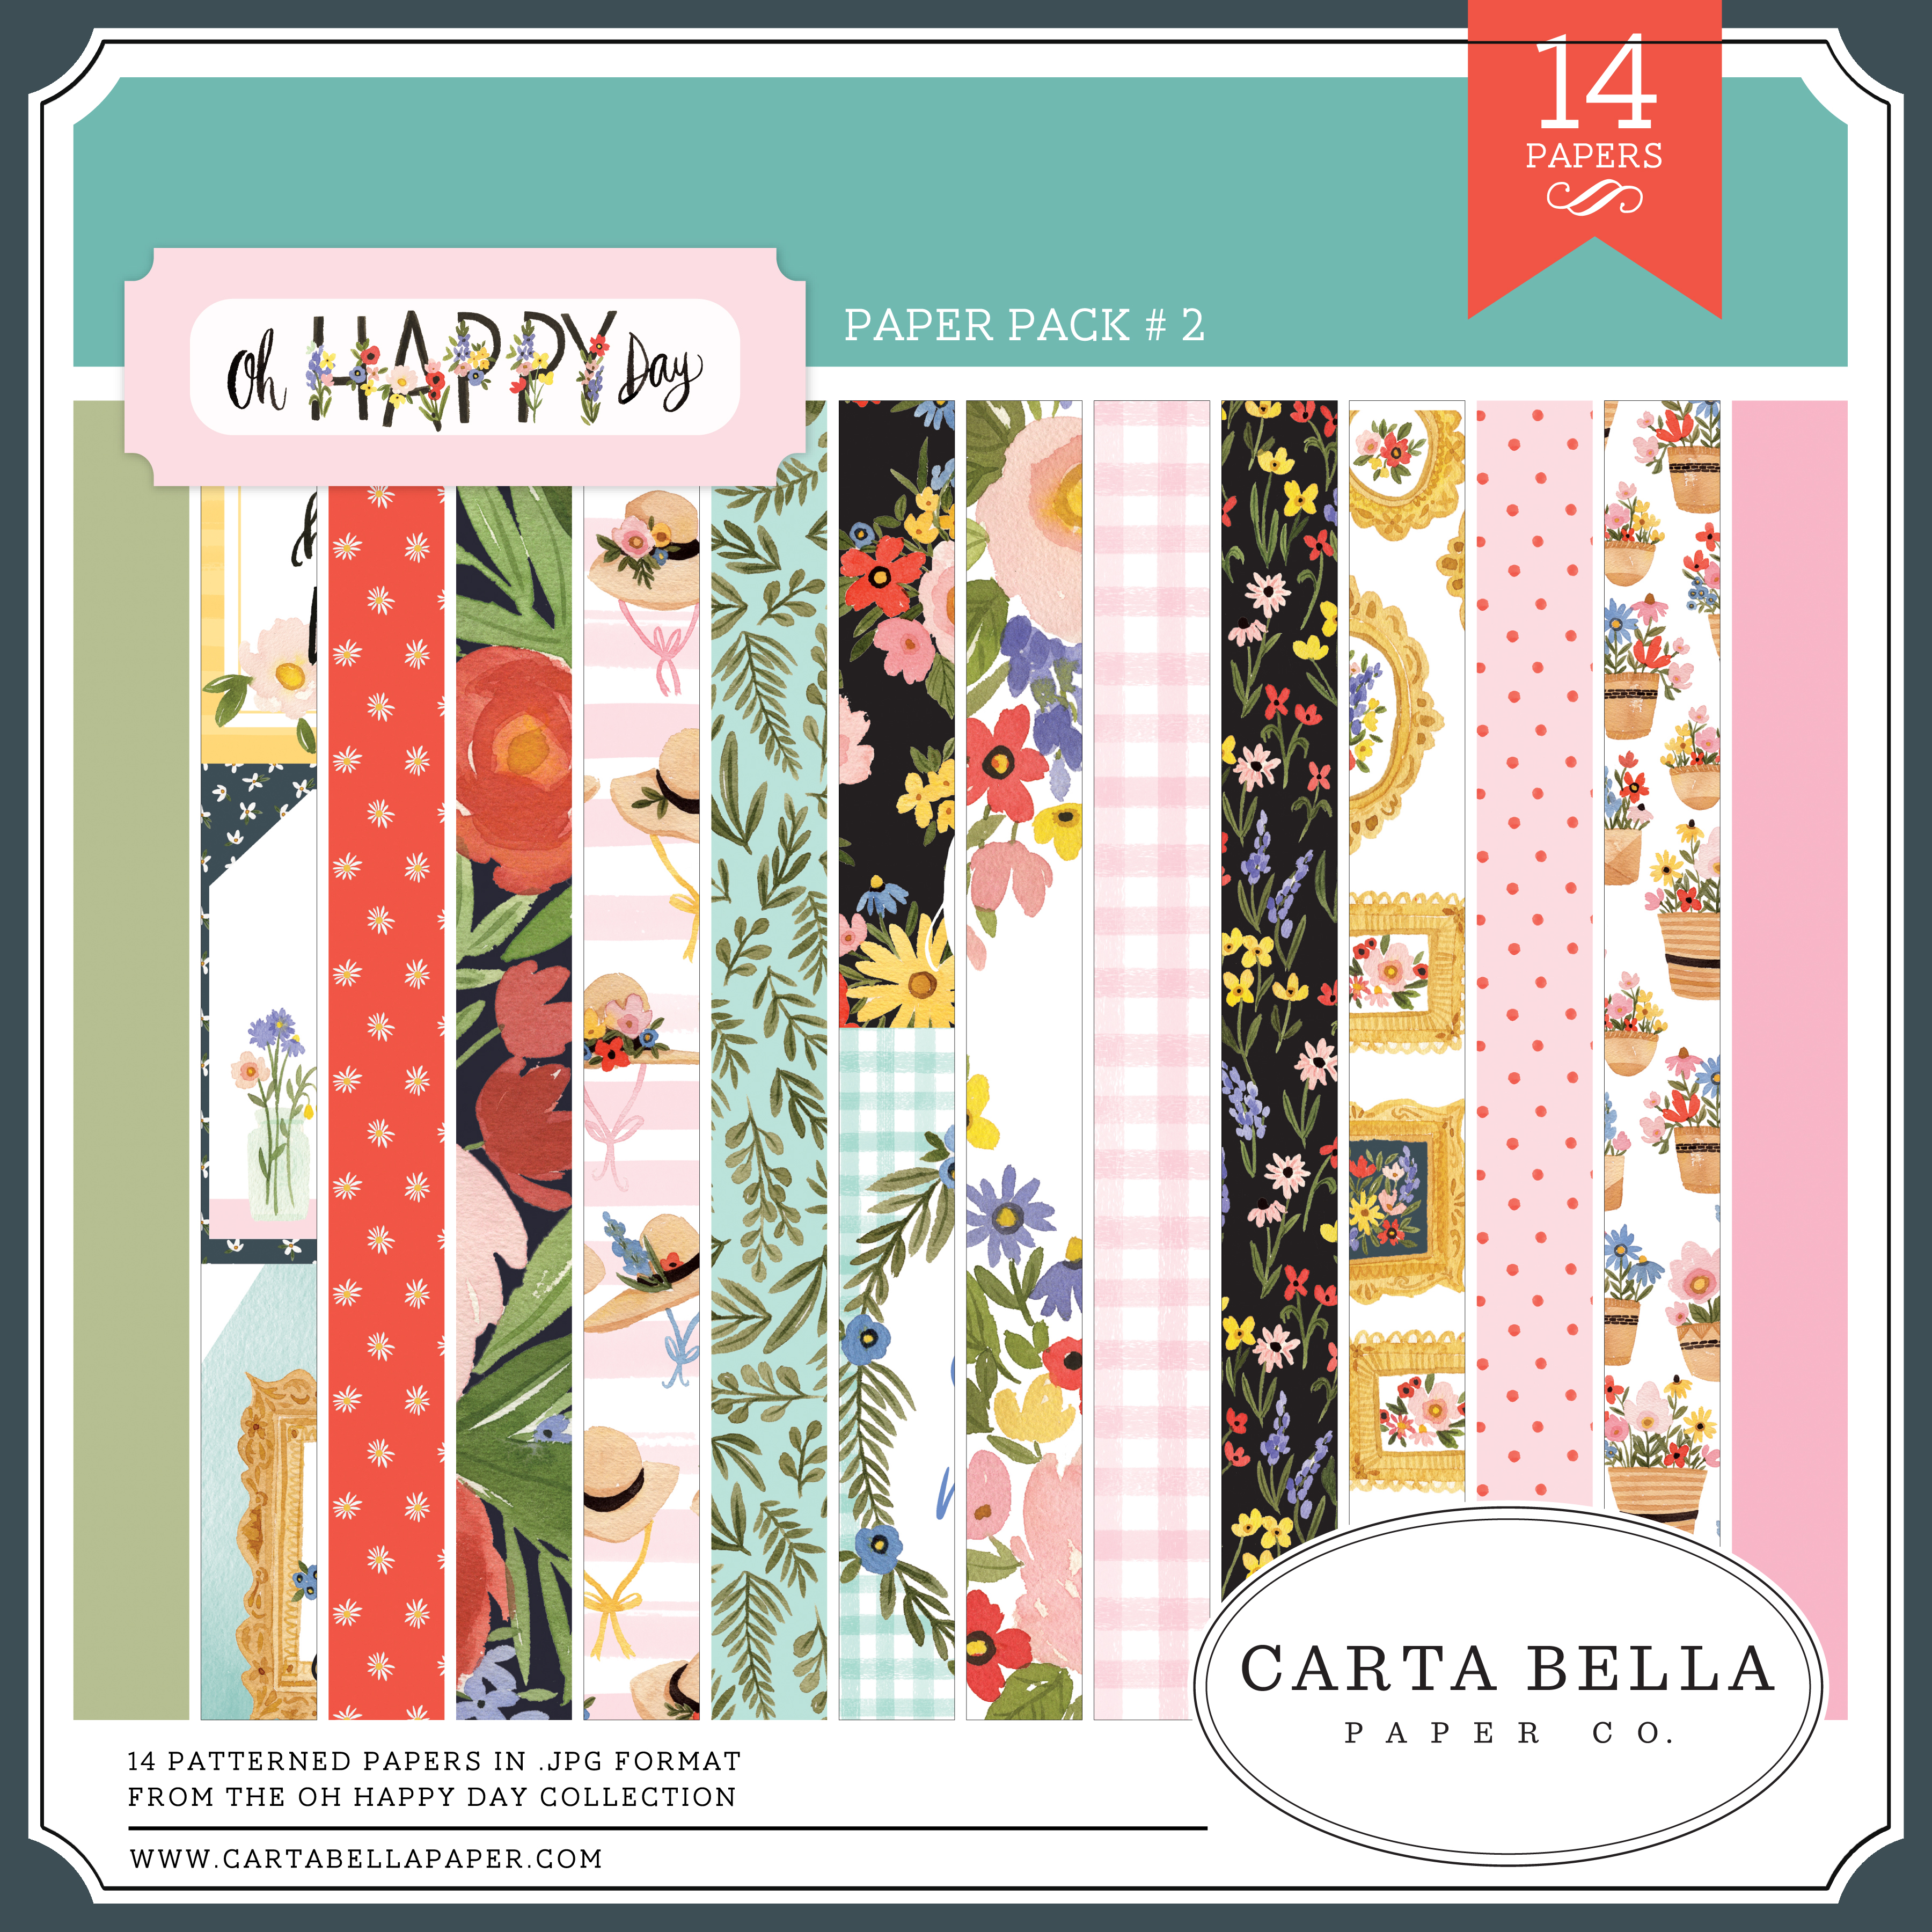 Oh Happy Day Paper Pack #2